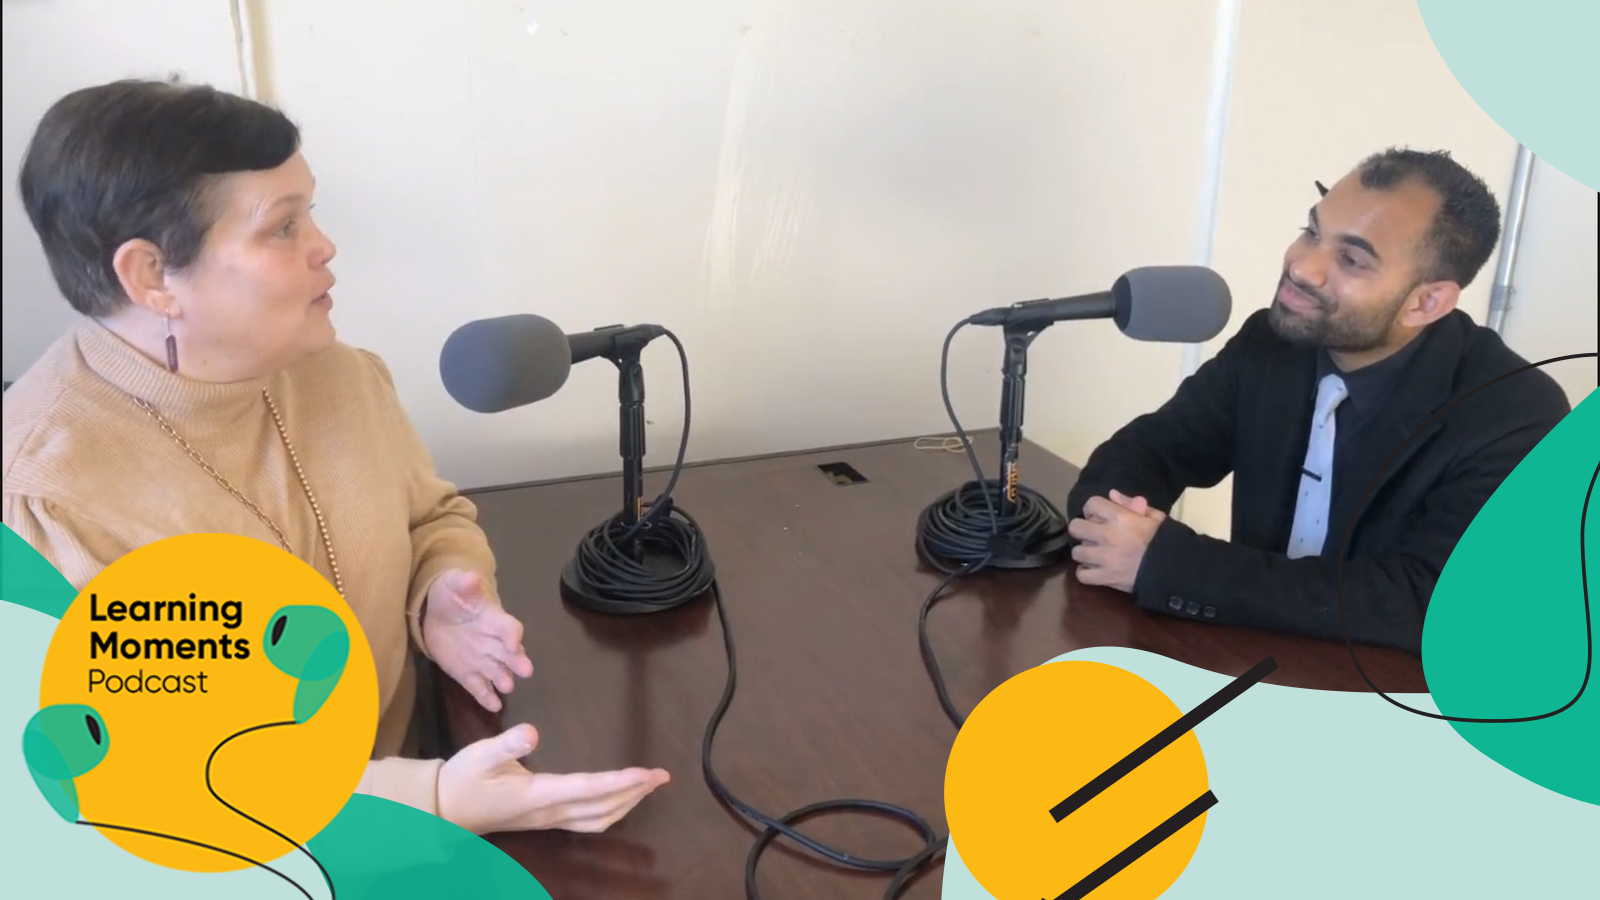 Podcast: From ELL Student to HS Math Teacher with Priyank Bhatt on Teachers in America